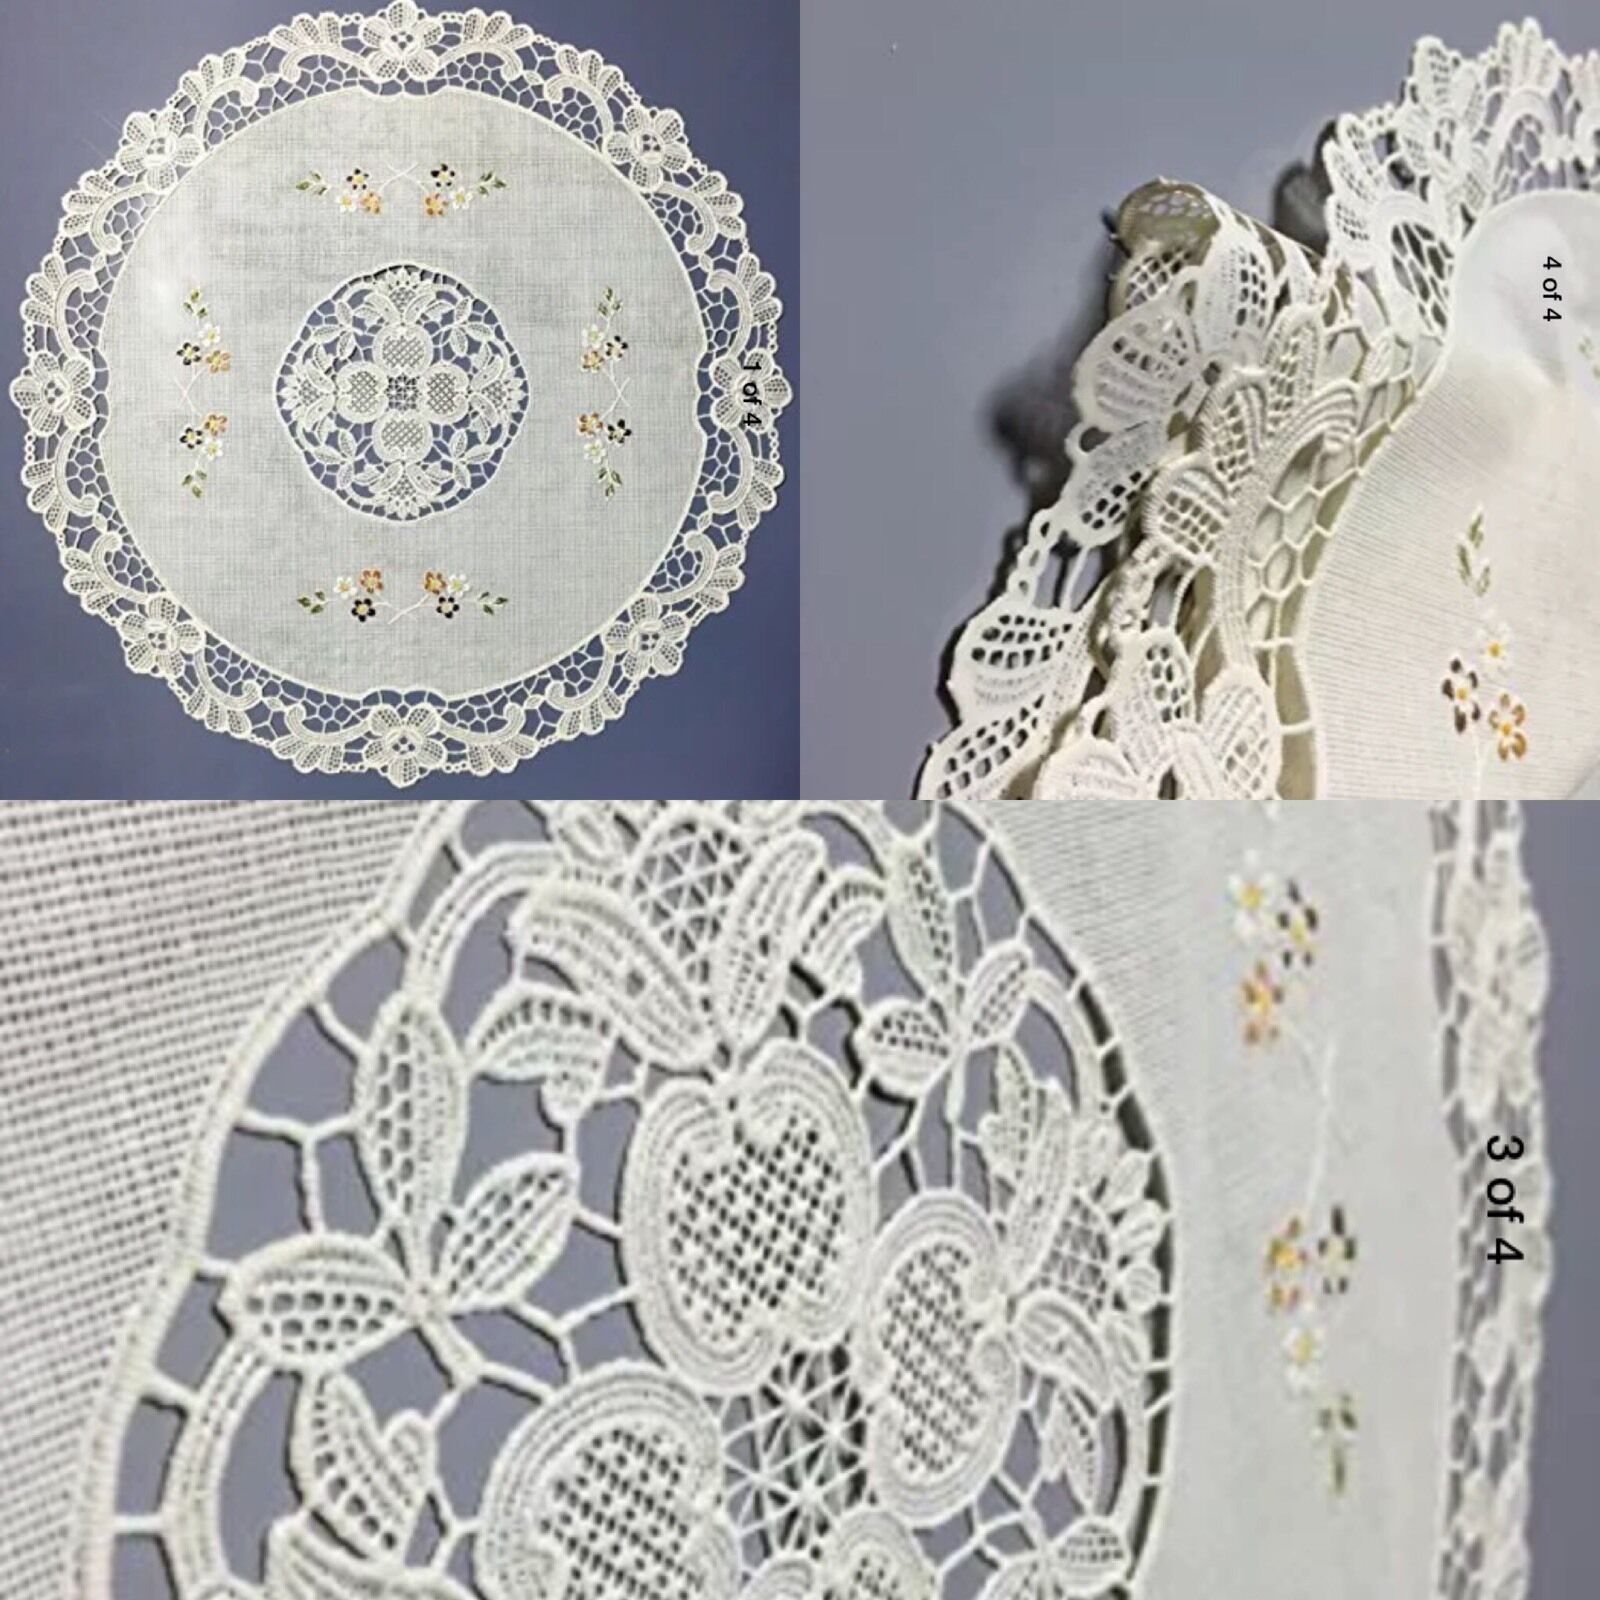 vinyl lace placemats four plastic beige floral 4 round set christmas gift 1 of 4free shipping vinyl lace placemats